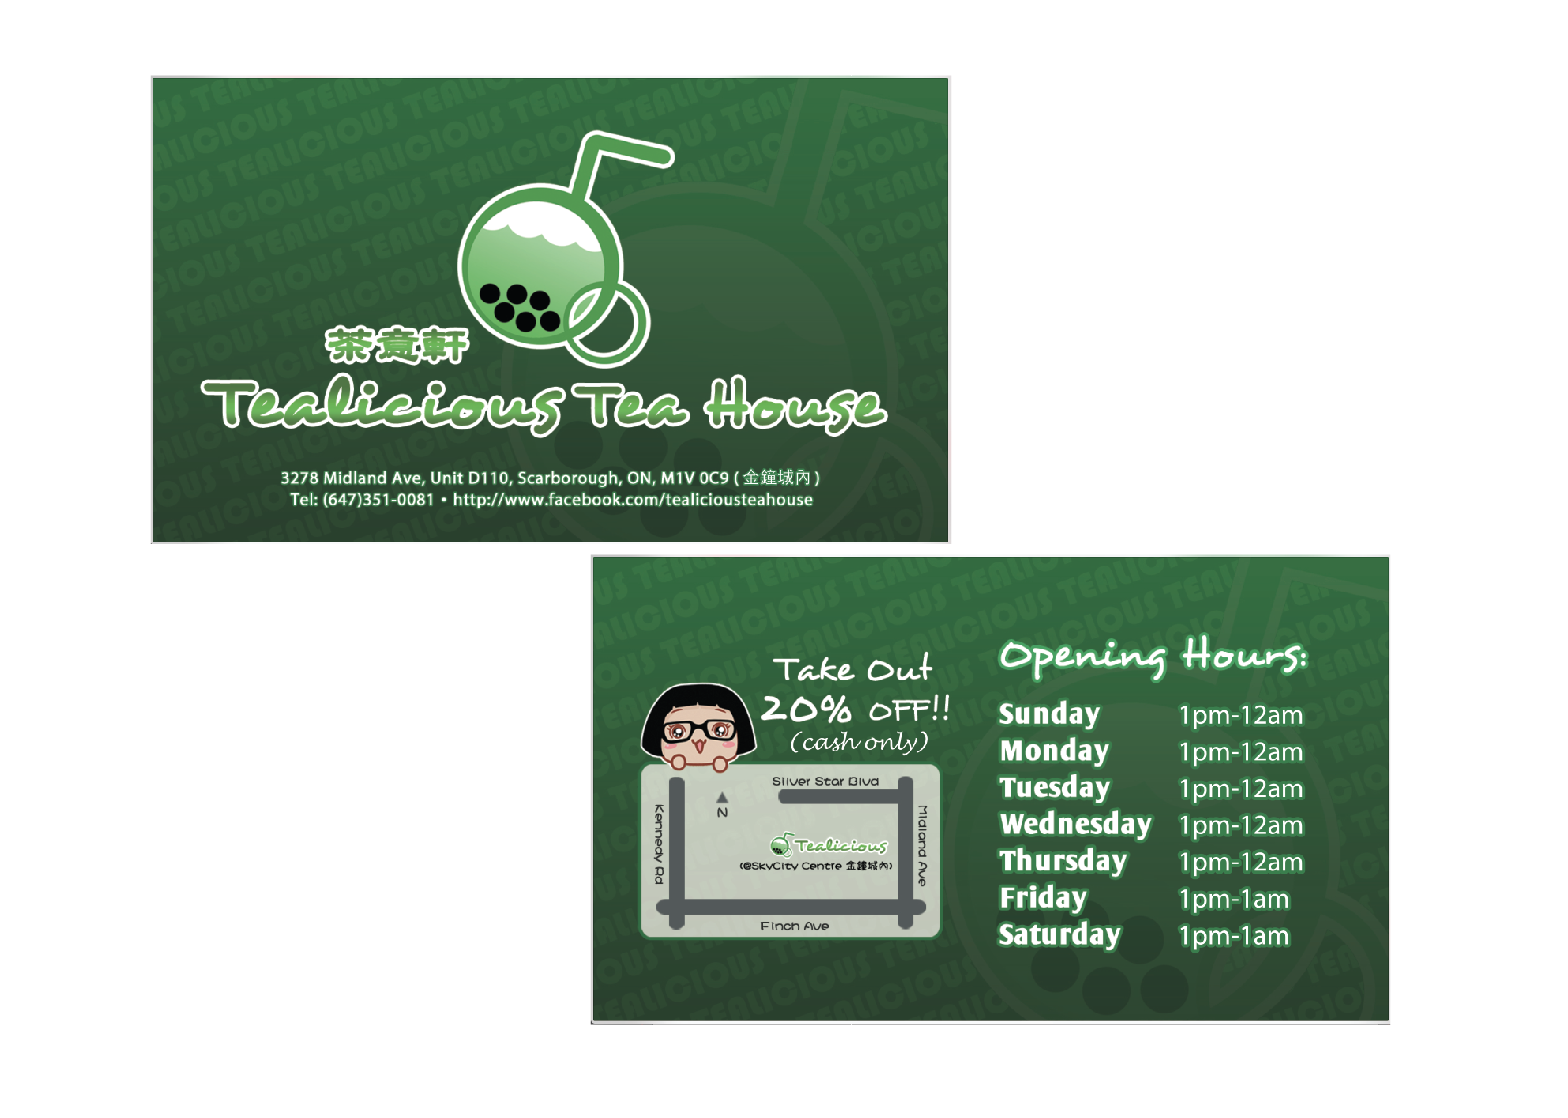 Business card layout design adrian cheung business card layout design magicingreecefo Choice Image